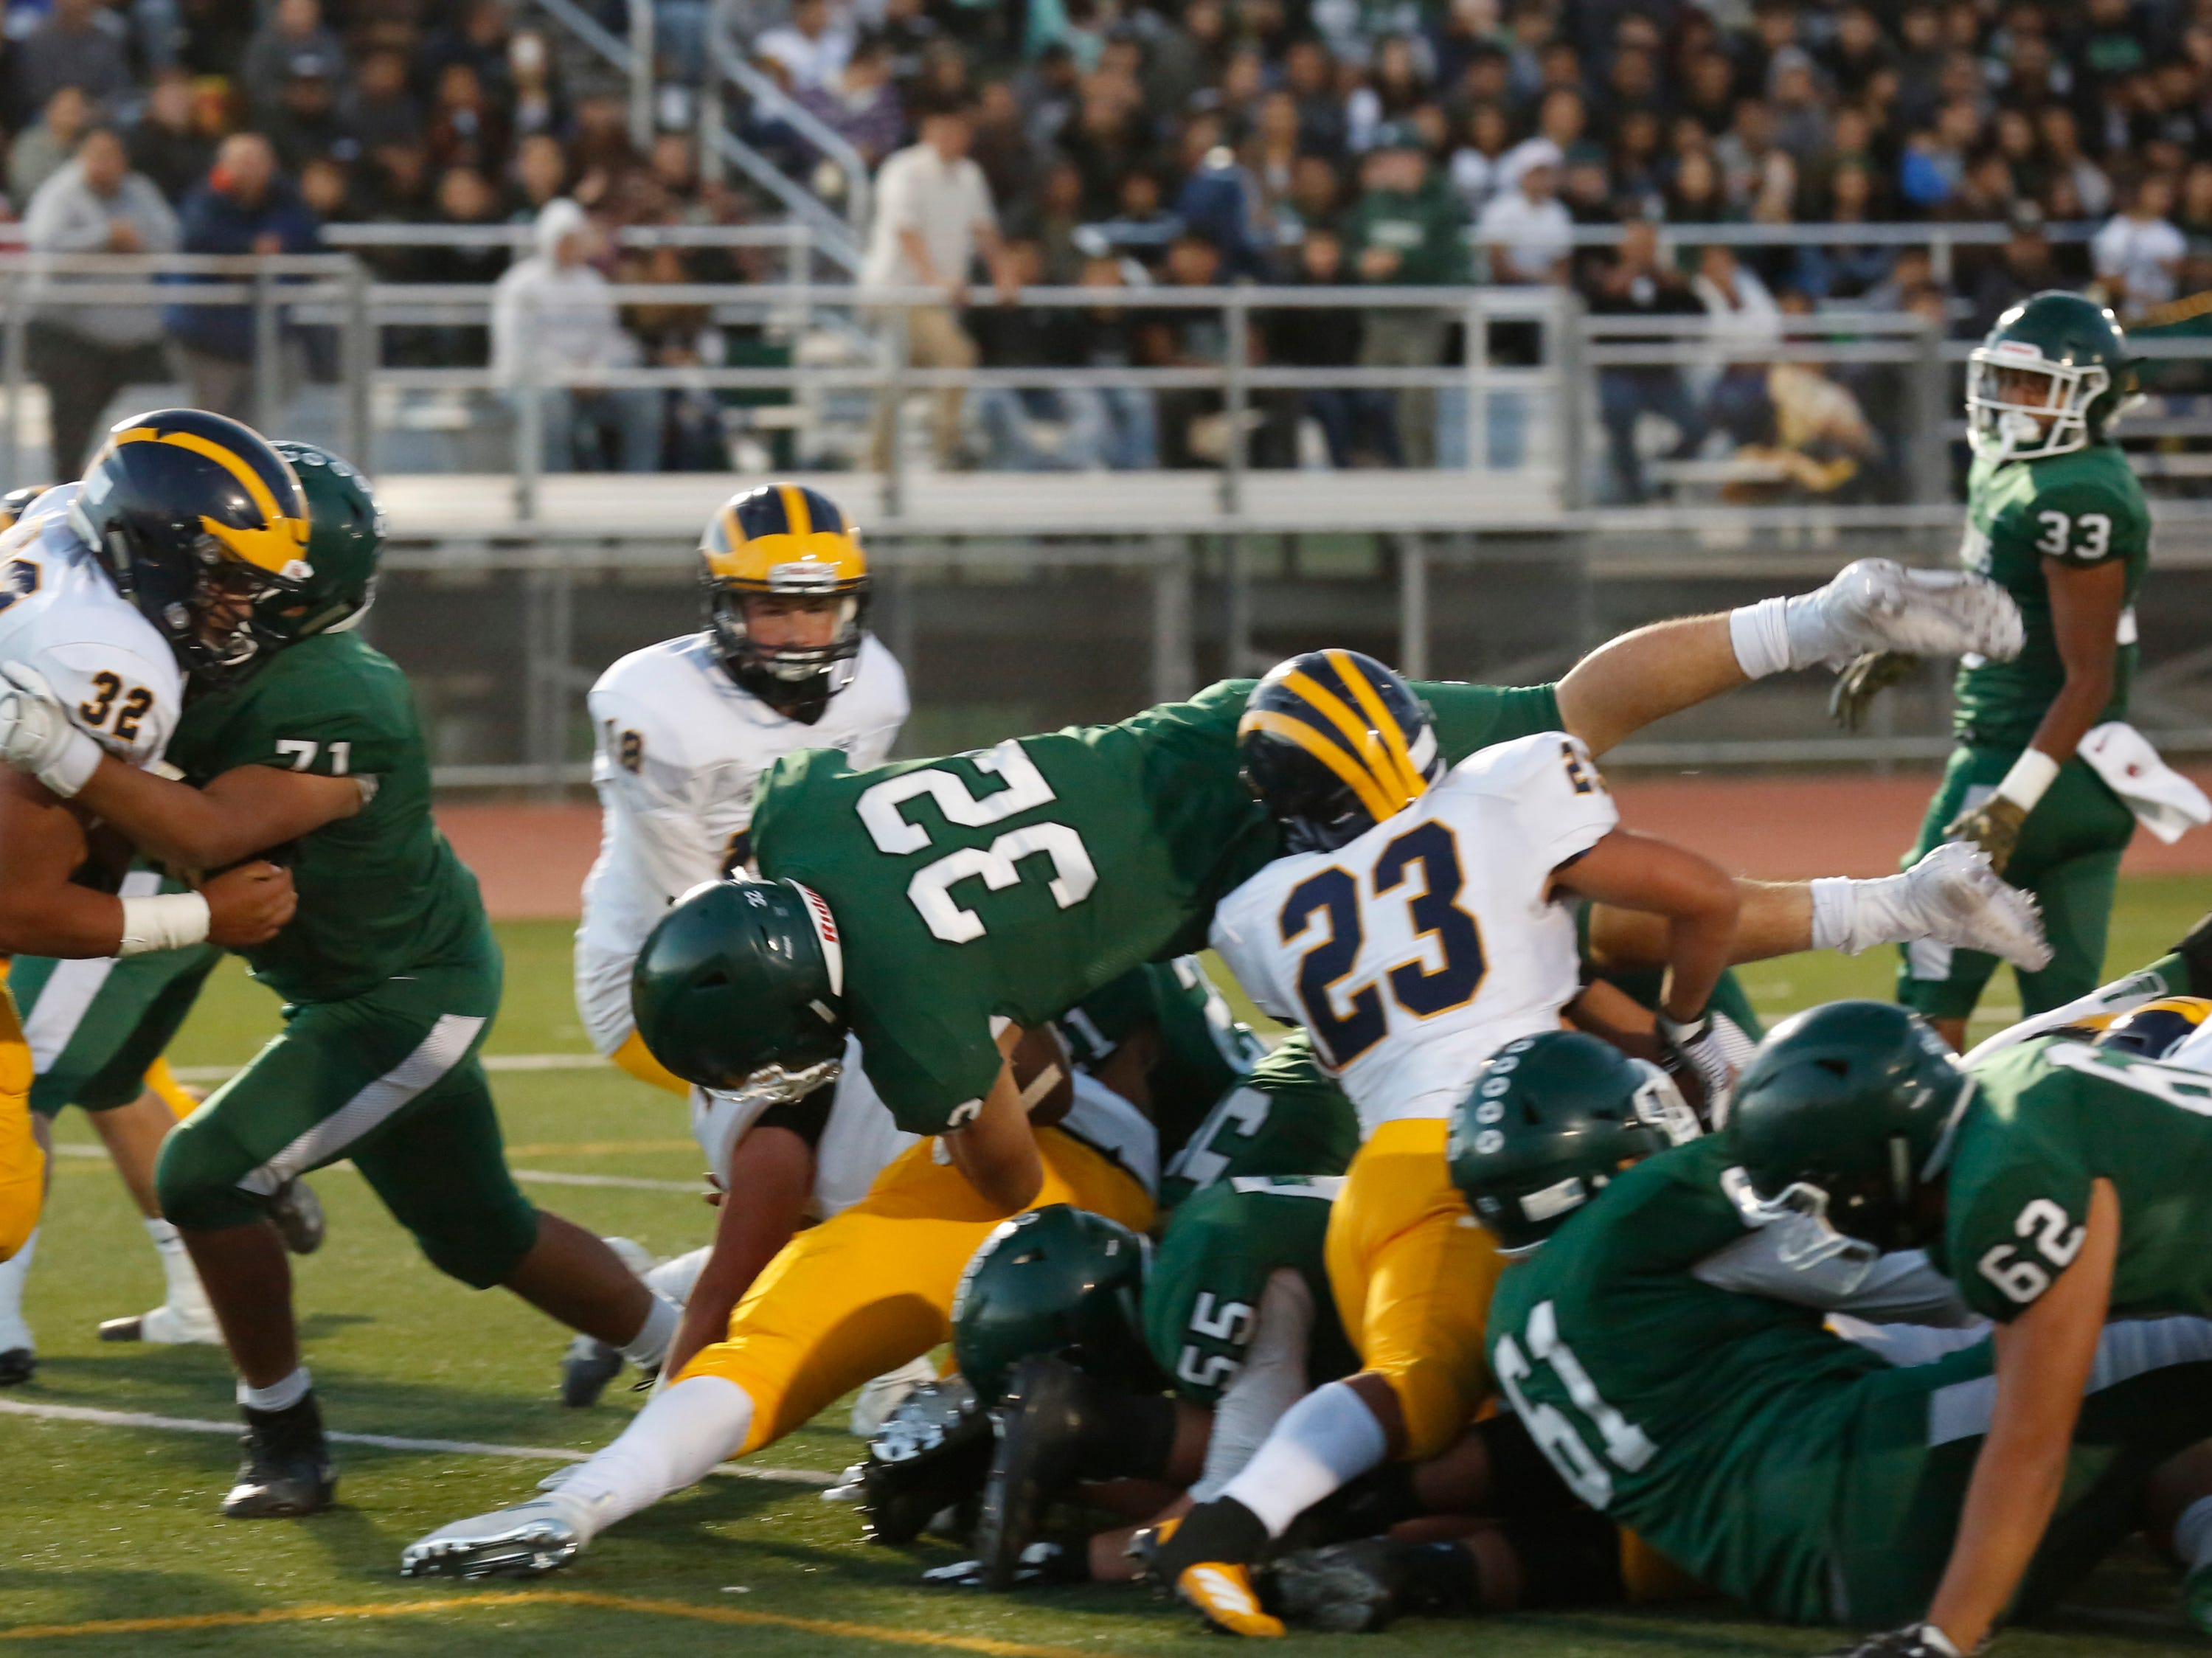 Alisal's Dorian Segovia (32) goes up and over for a touchdown against Everett Alvarez during football at Alisal High School in Salinas on Friday August 31, 2018. (Photo By David Royal)